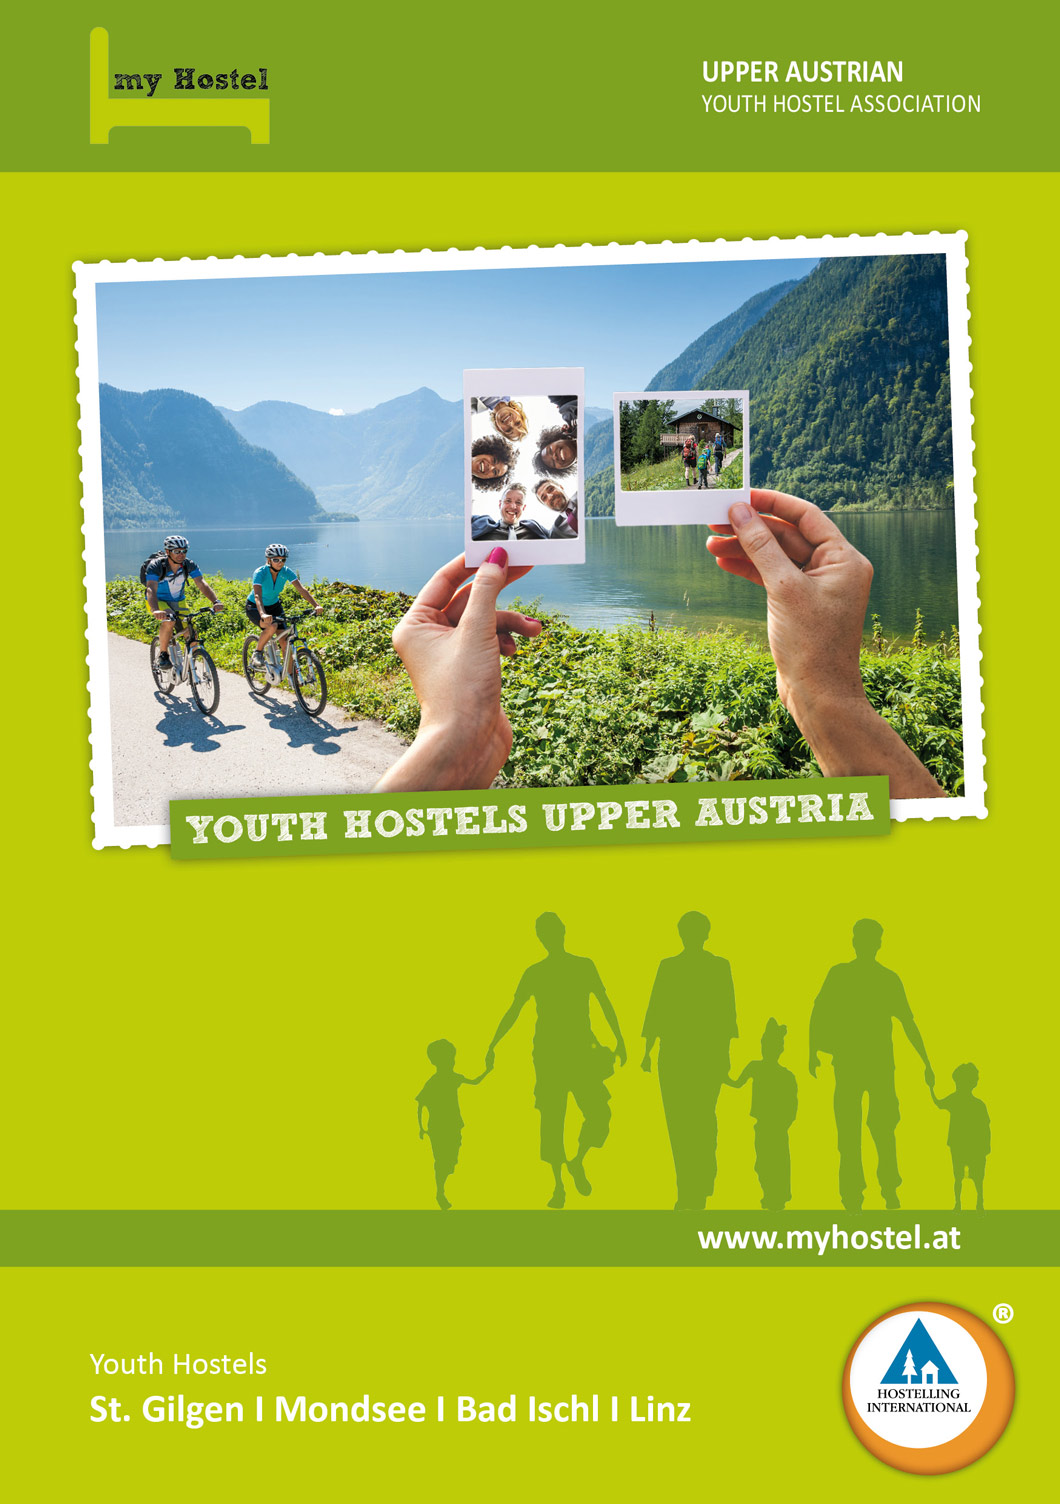 Catalog & Offers: Upper Austrian Youth Hostels